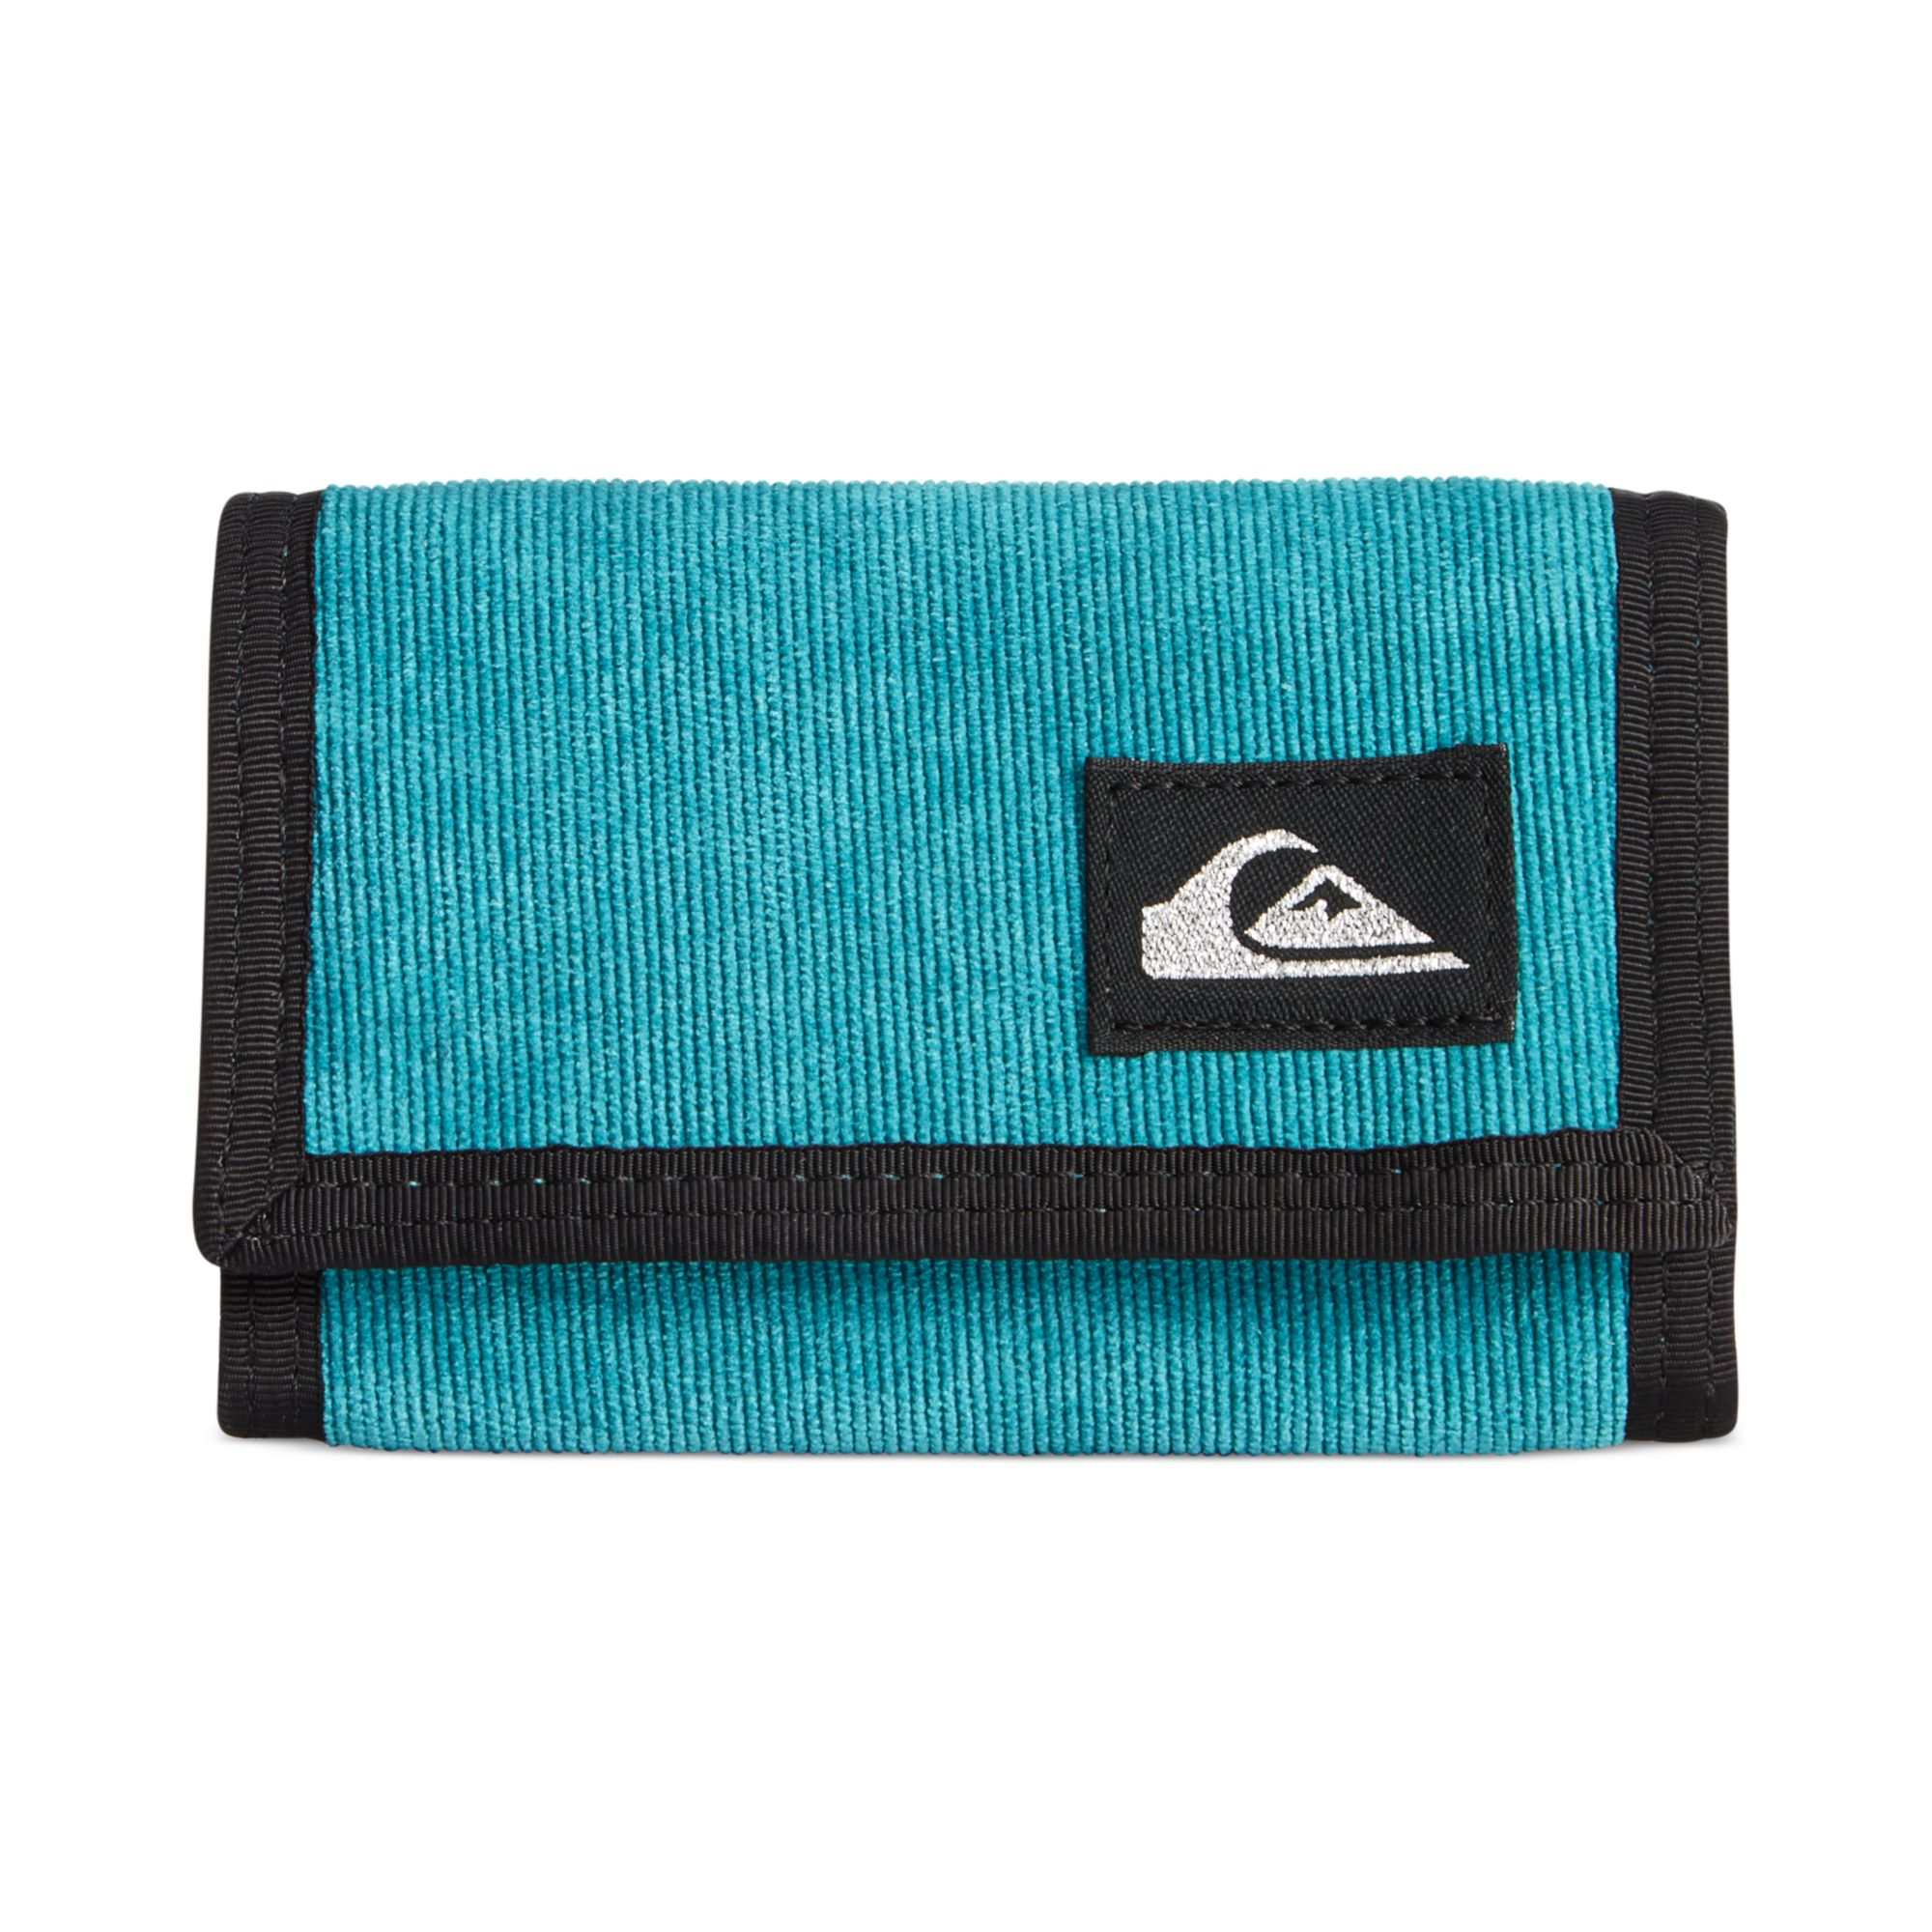 Coles Mobile Activate Quiksilver Activate Wallet In Blue For Men Lyst